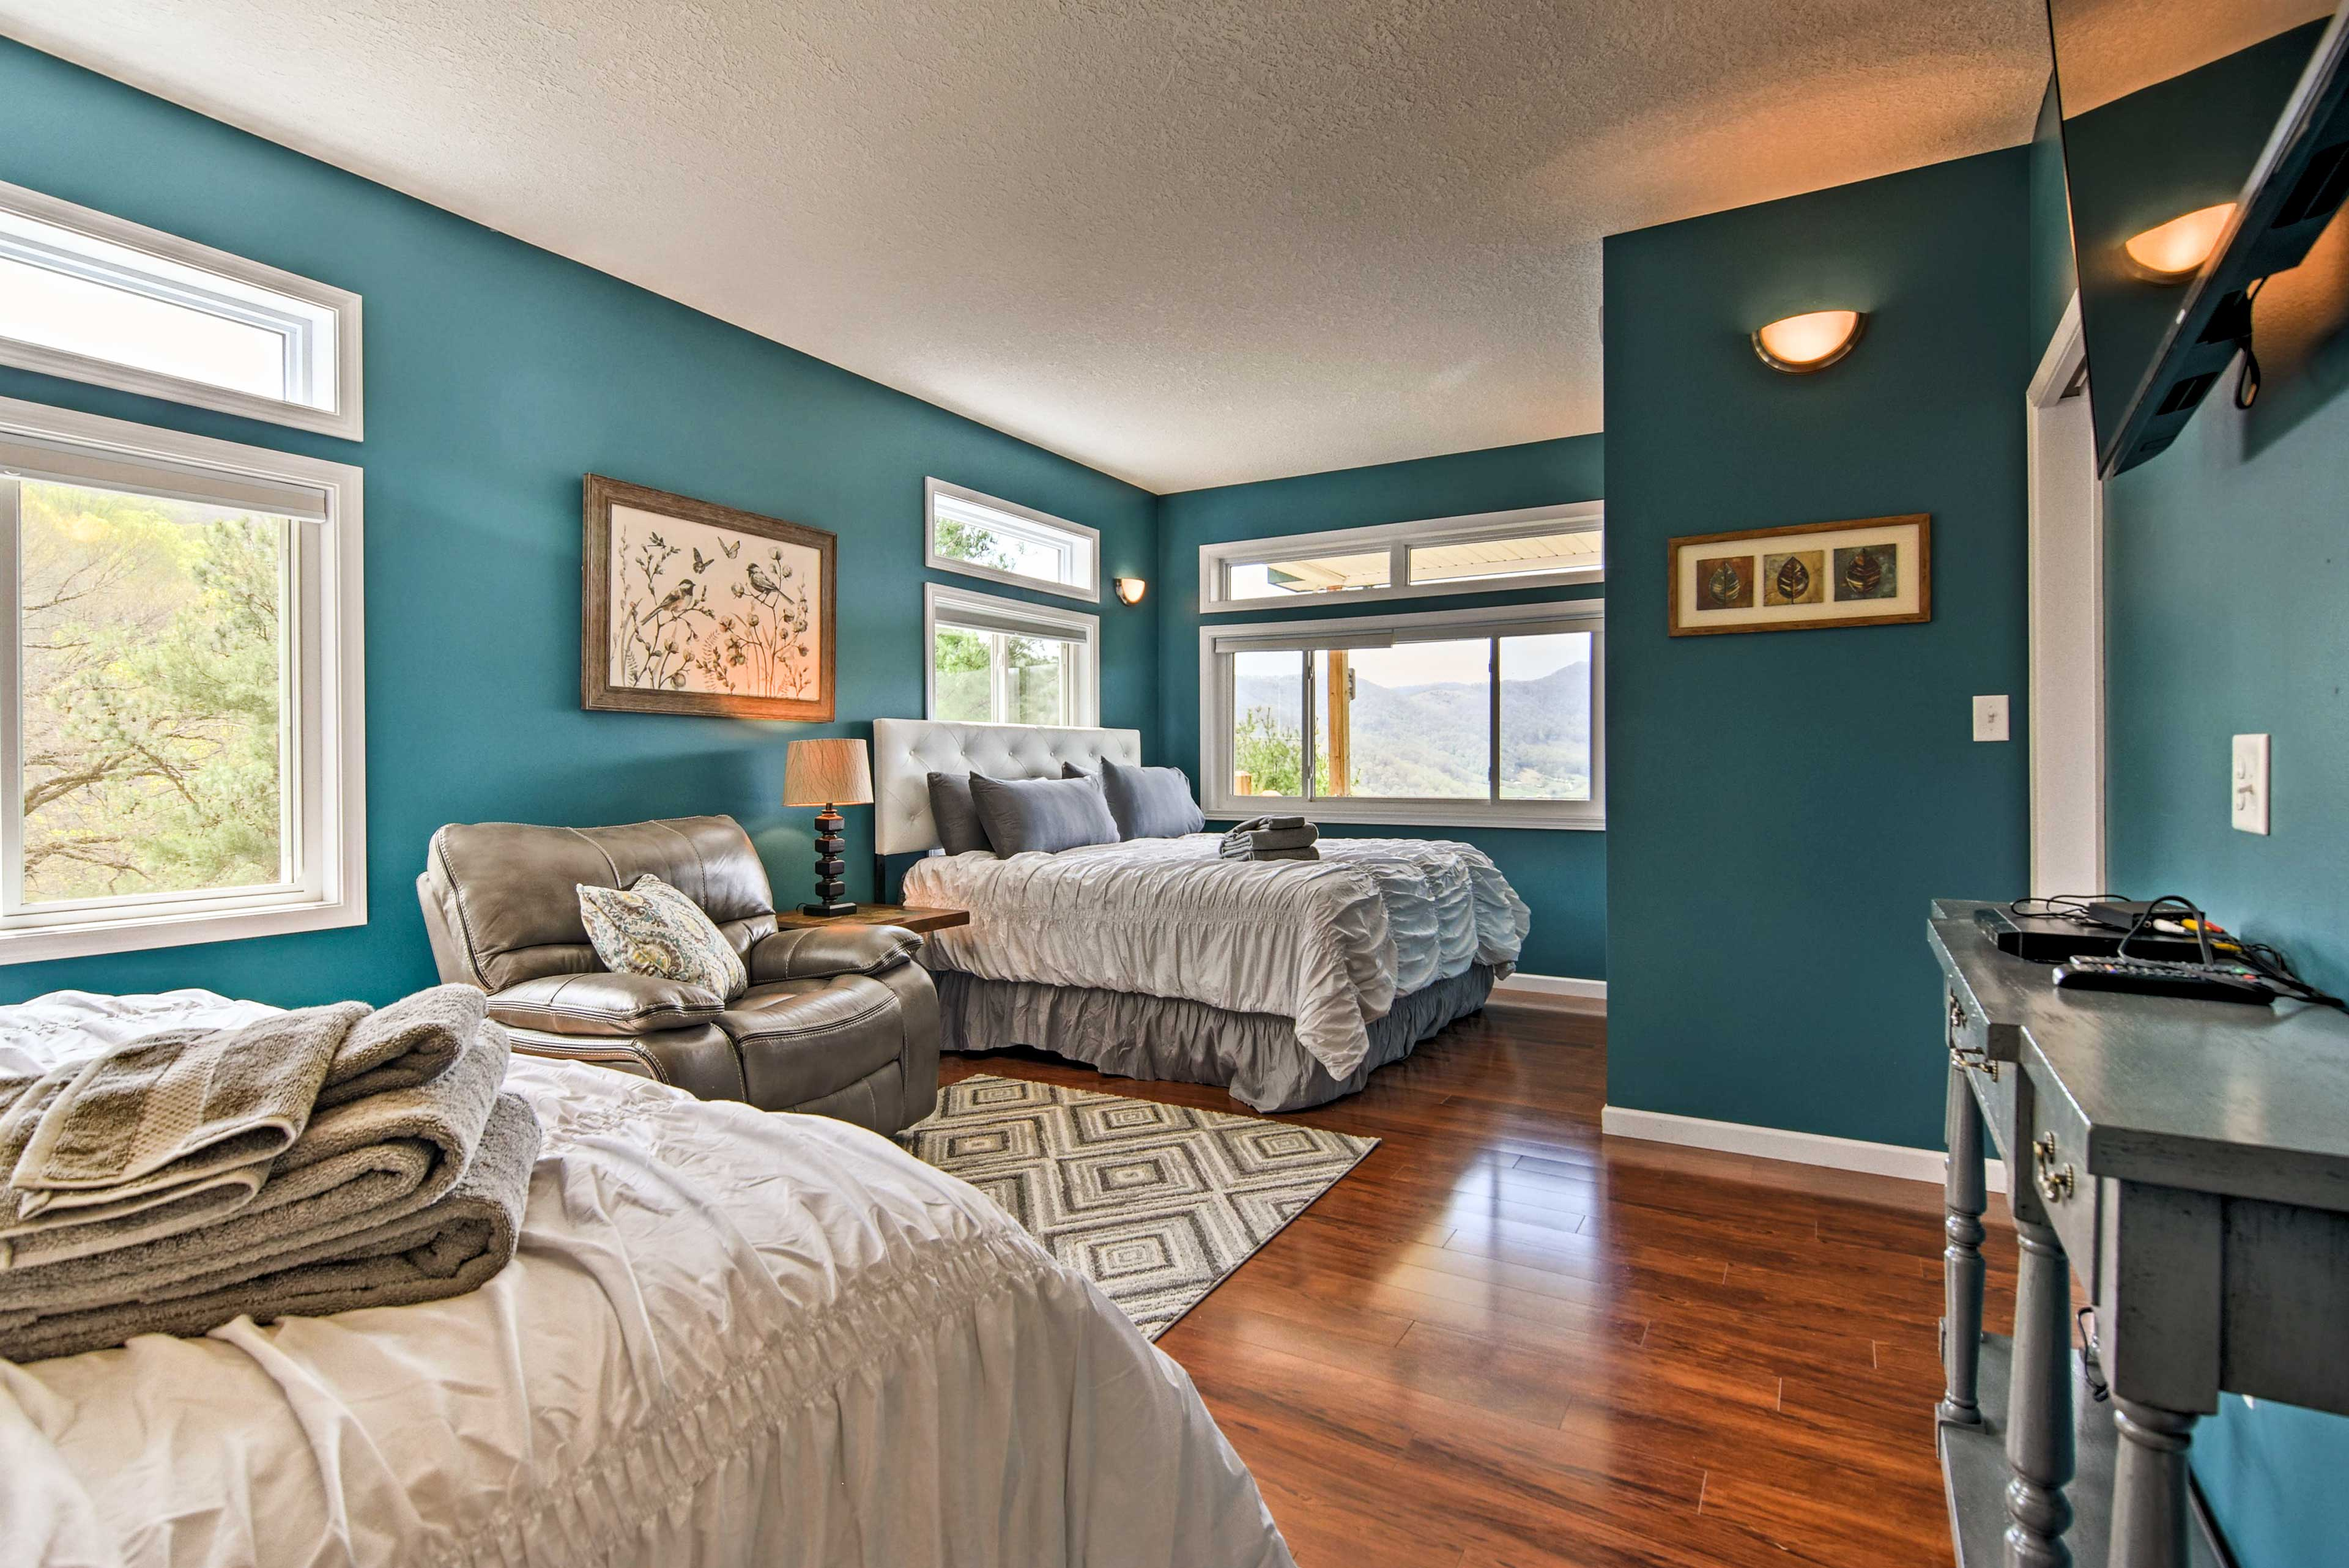 Up to 4 travelers can claim the master bedroom.